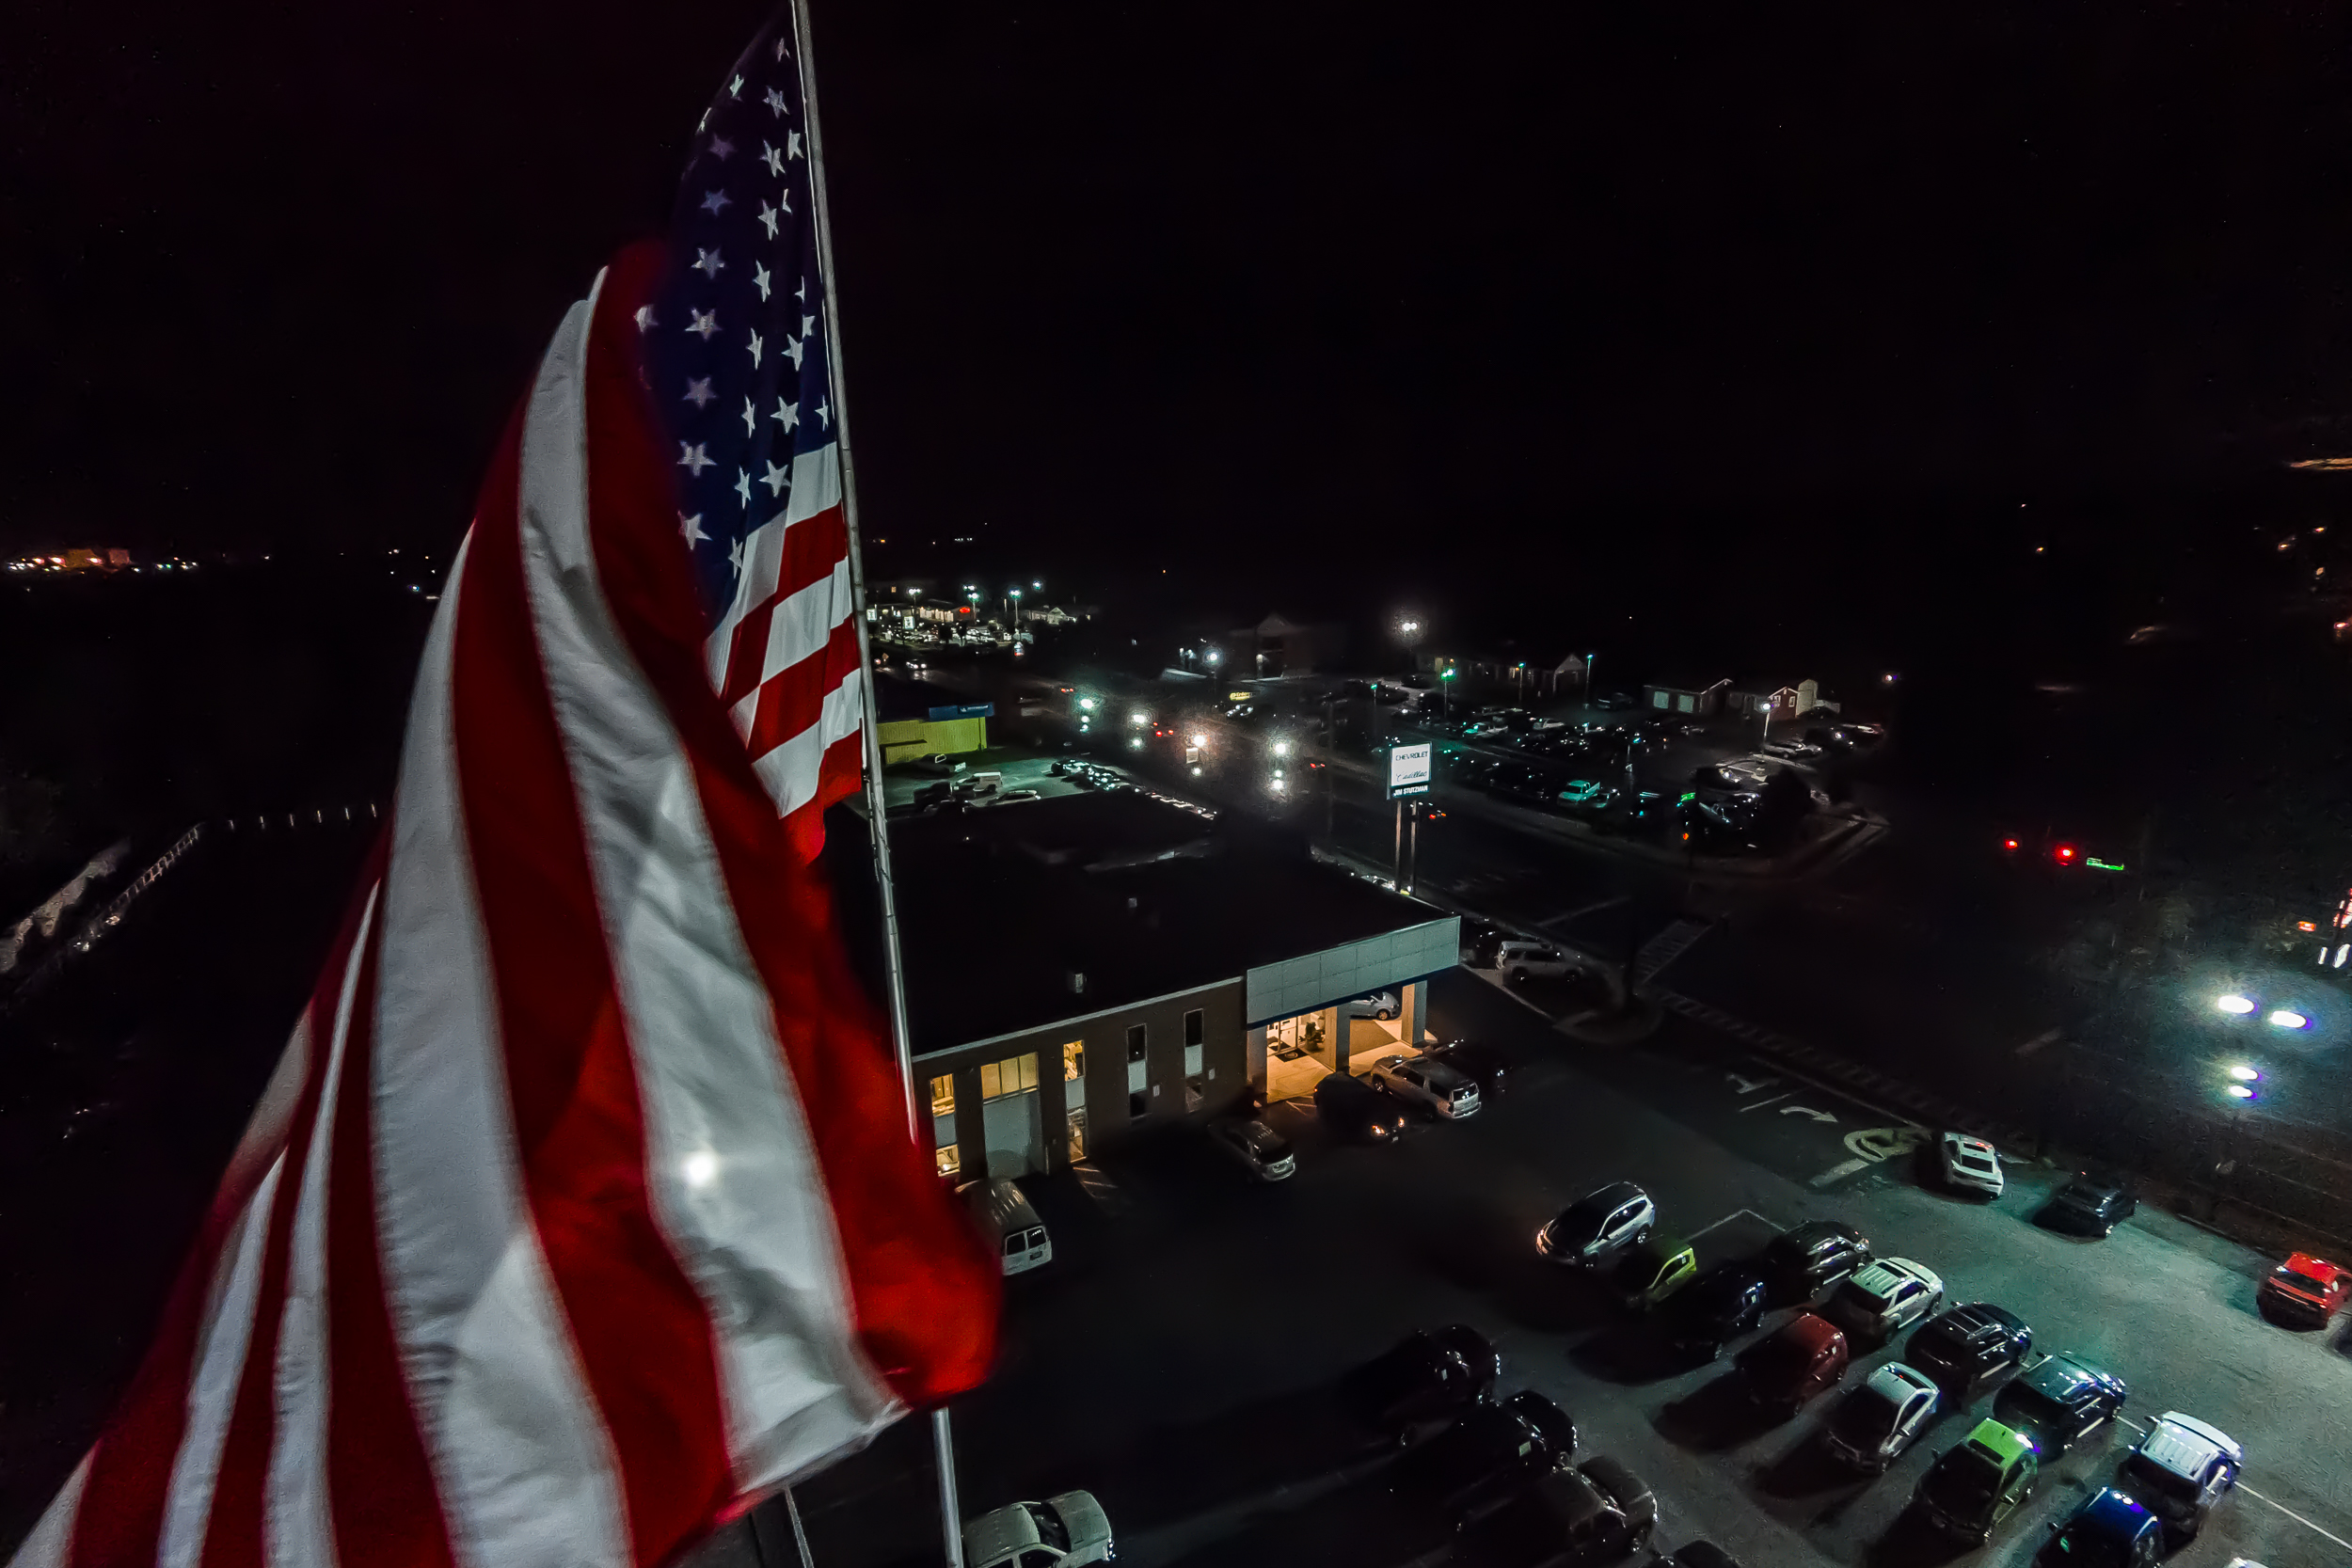 That's one BIG flag.  I've been living my house now for 10+ years and it's still a little eerie to hear this flag flapping in the wind at night.